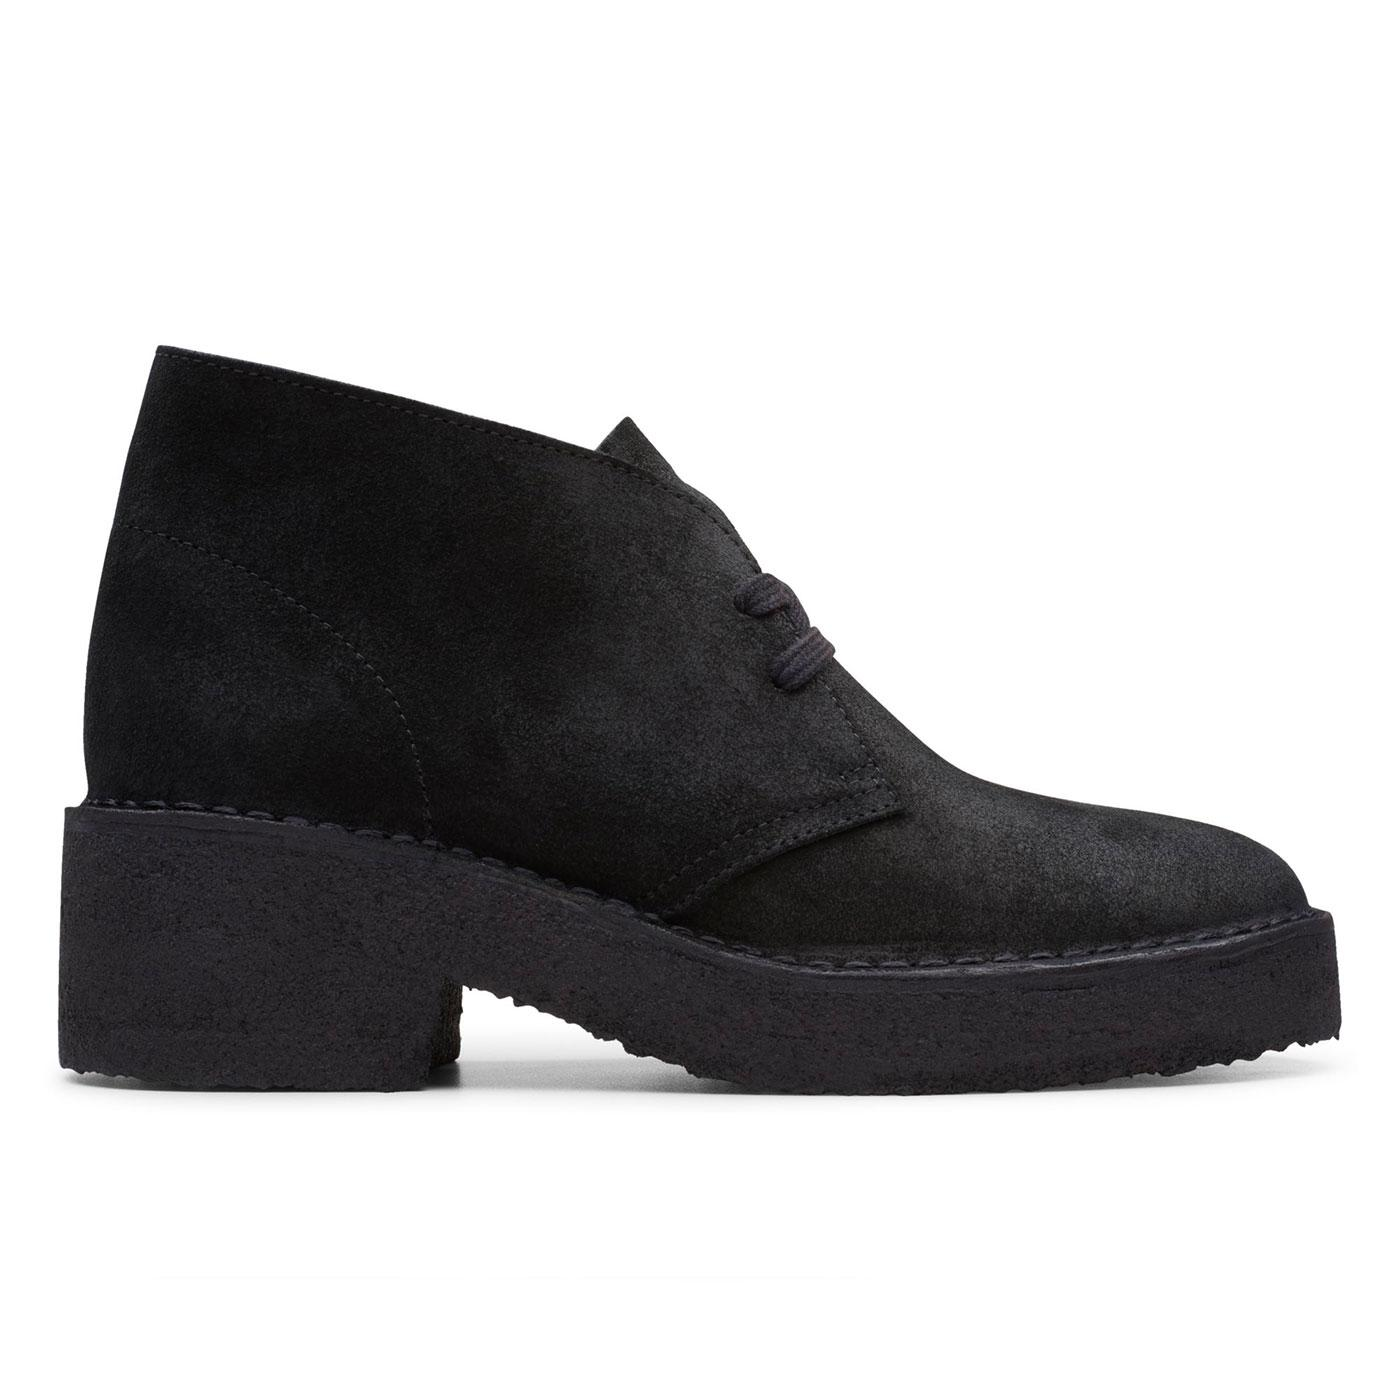 Arisa Desert CLARKS ORIGINALS Desert Boots (Black)